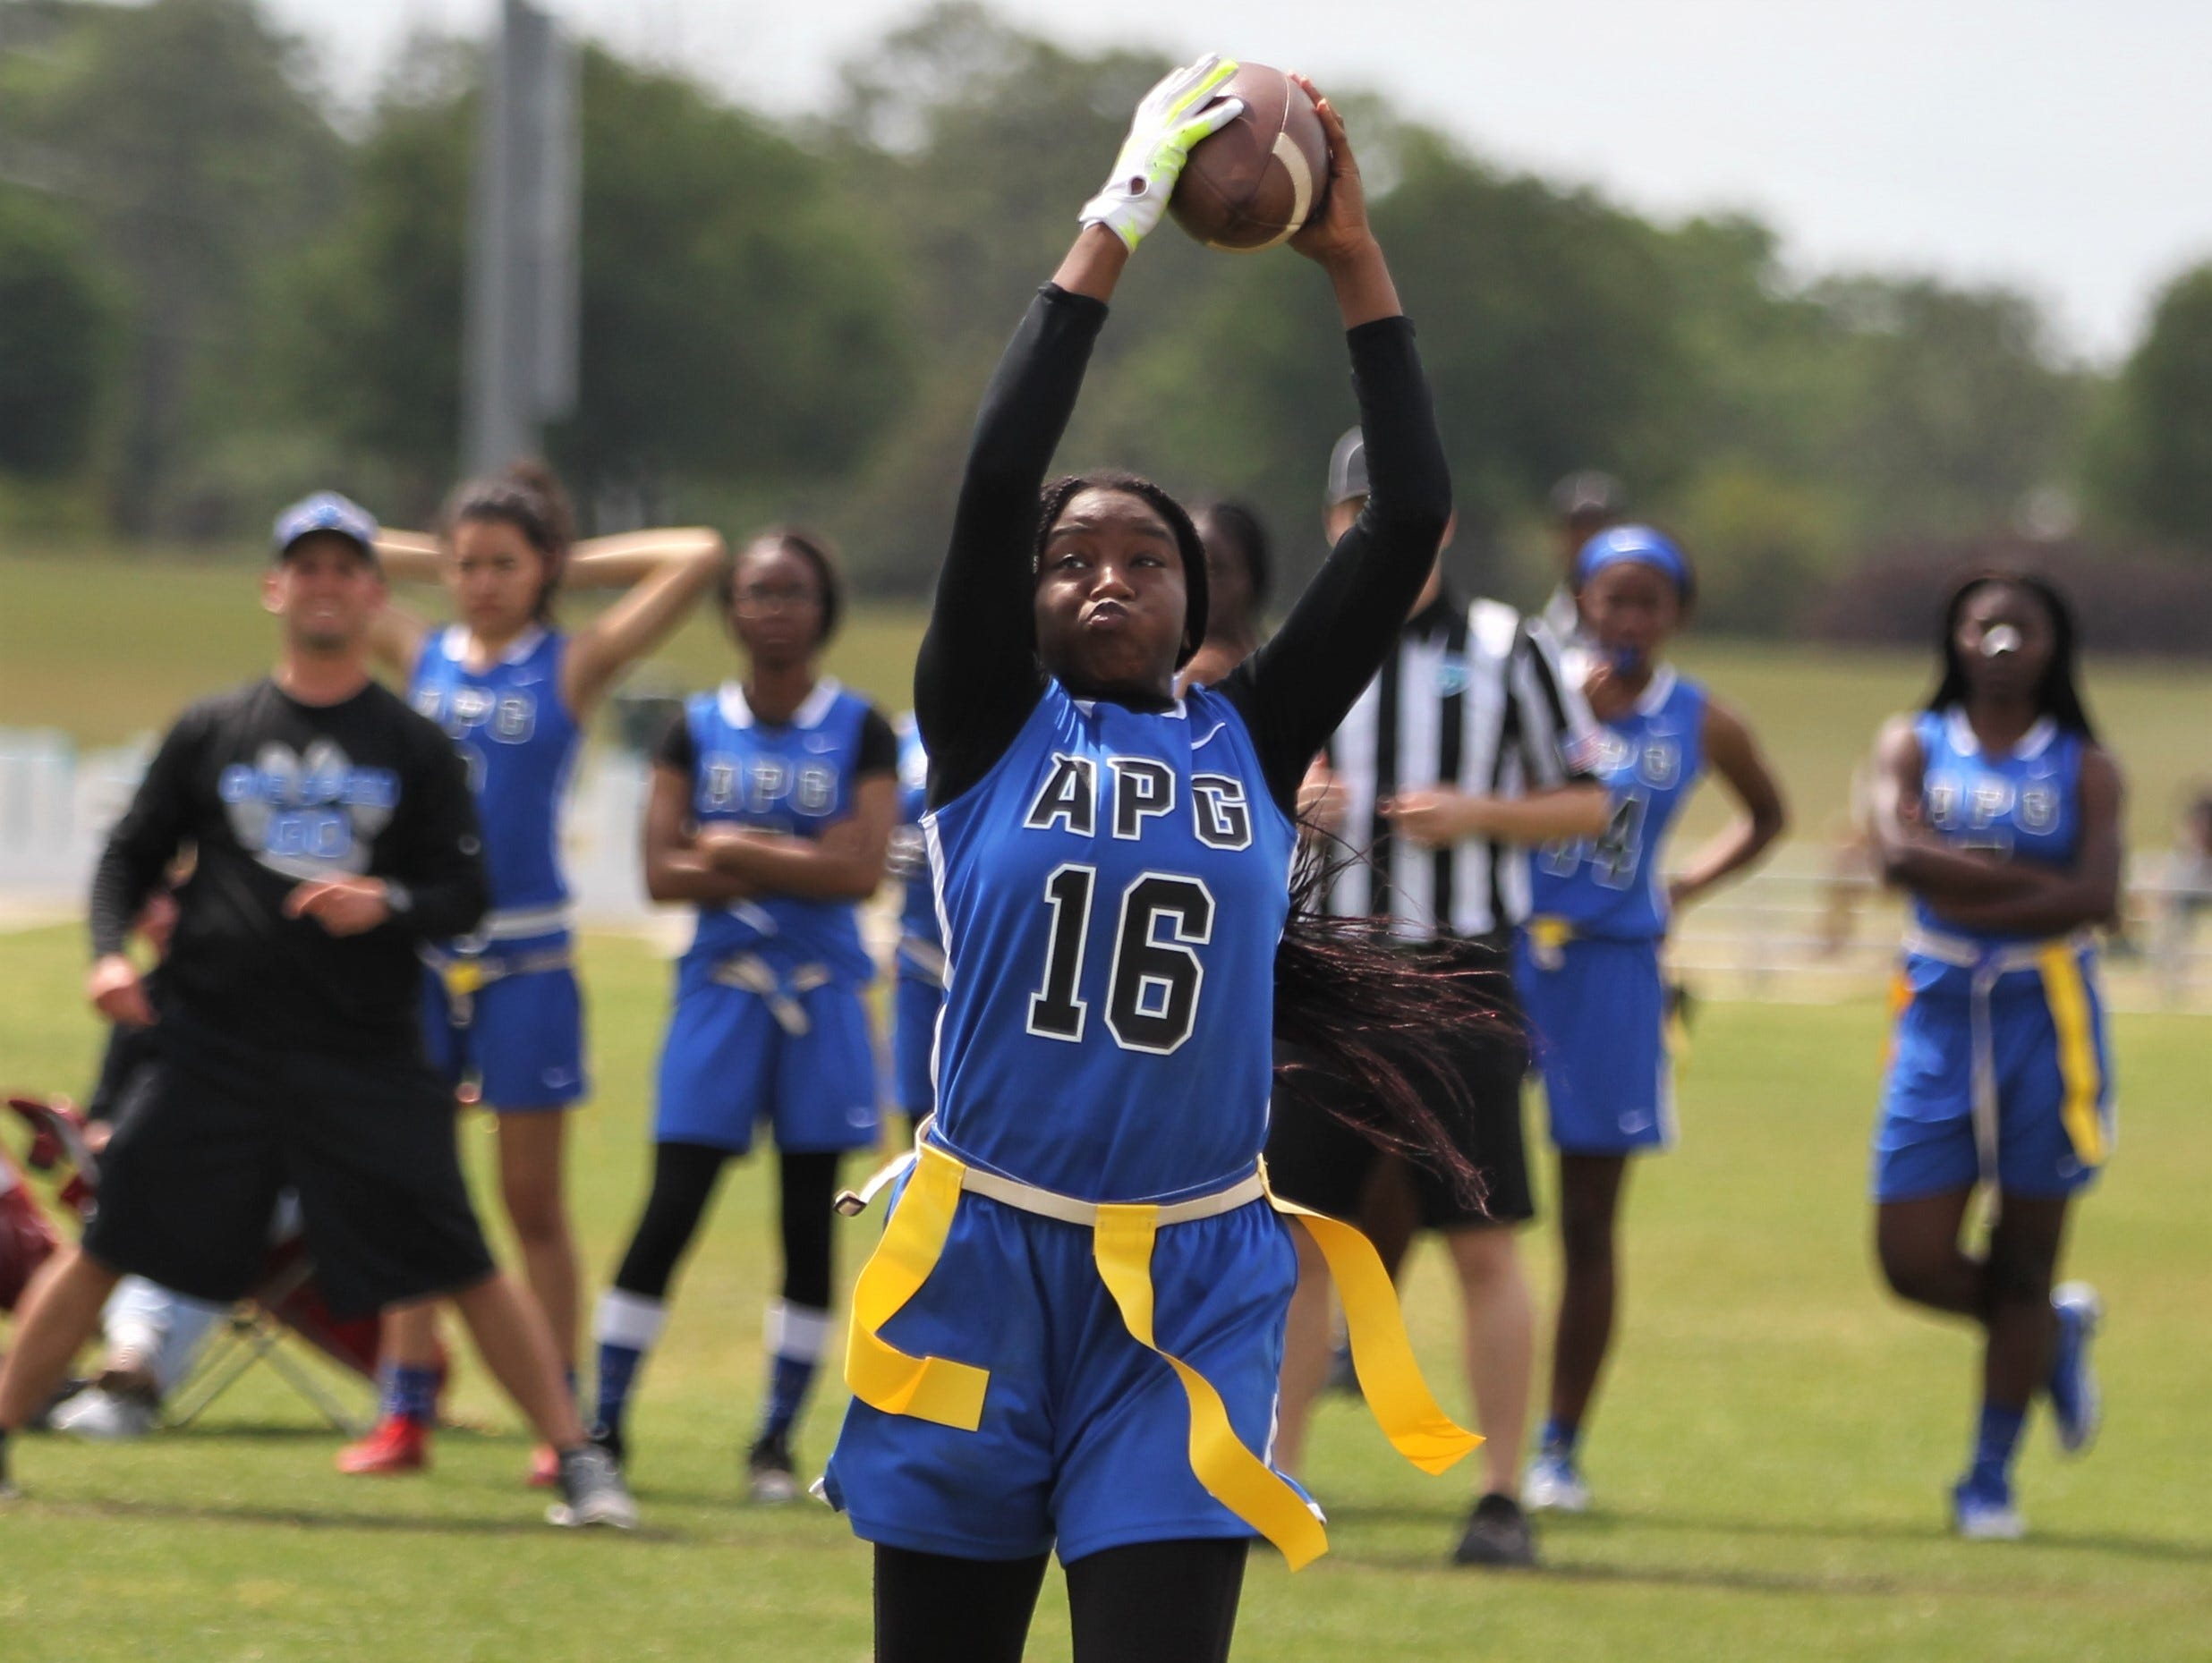 Godby's Essence Nobles makes a catch during the 2019 Capital City Classic flag football tournament at the FSU Rec SportsPlex on April 6, 2019.